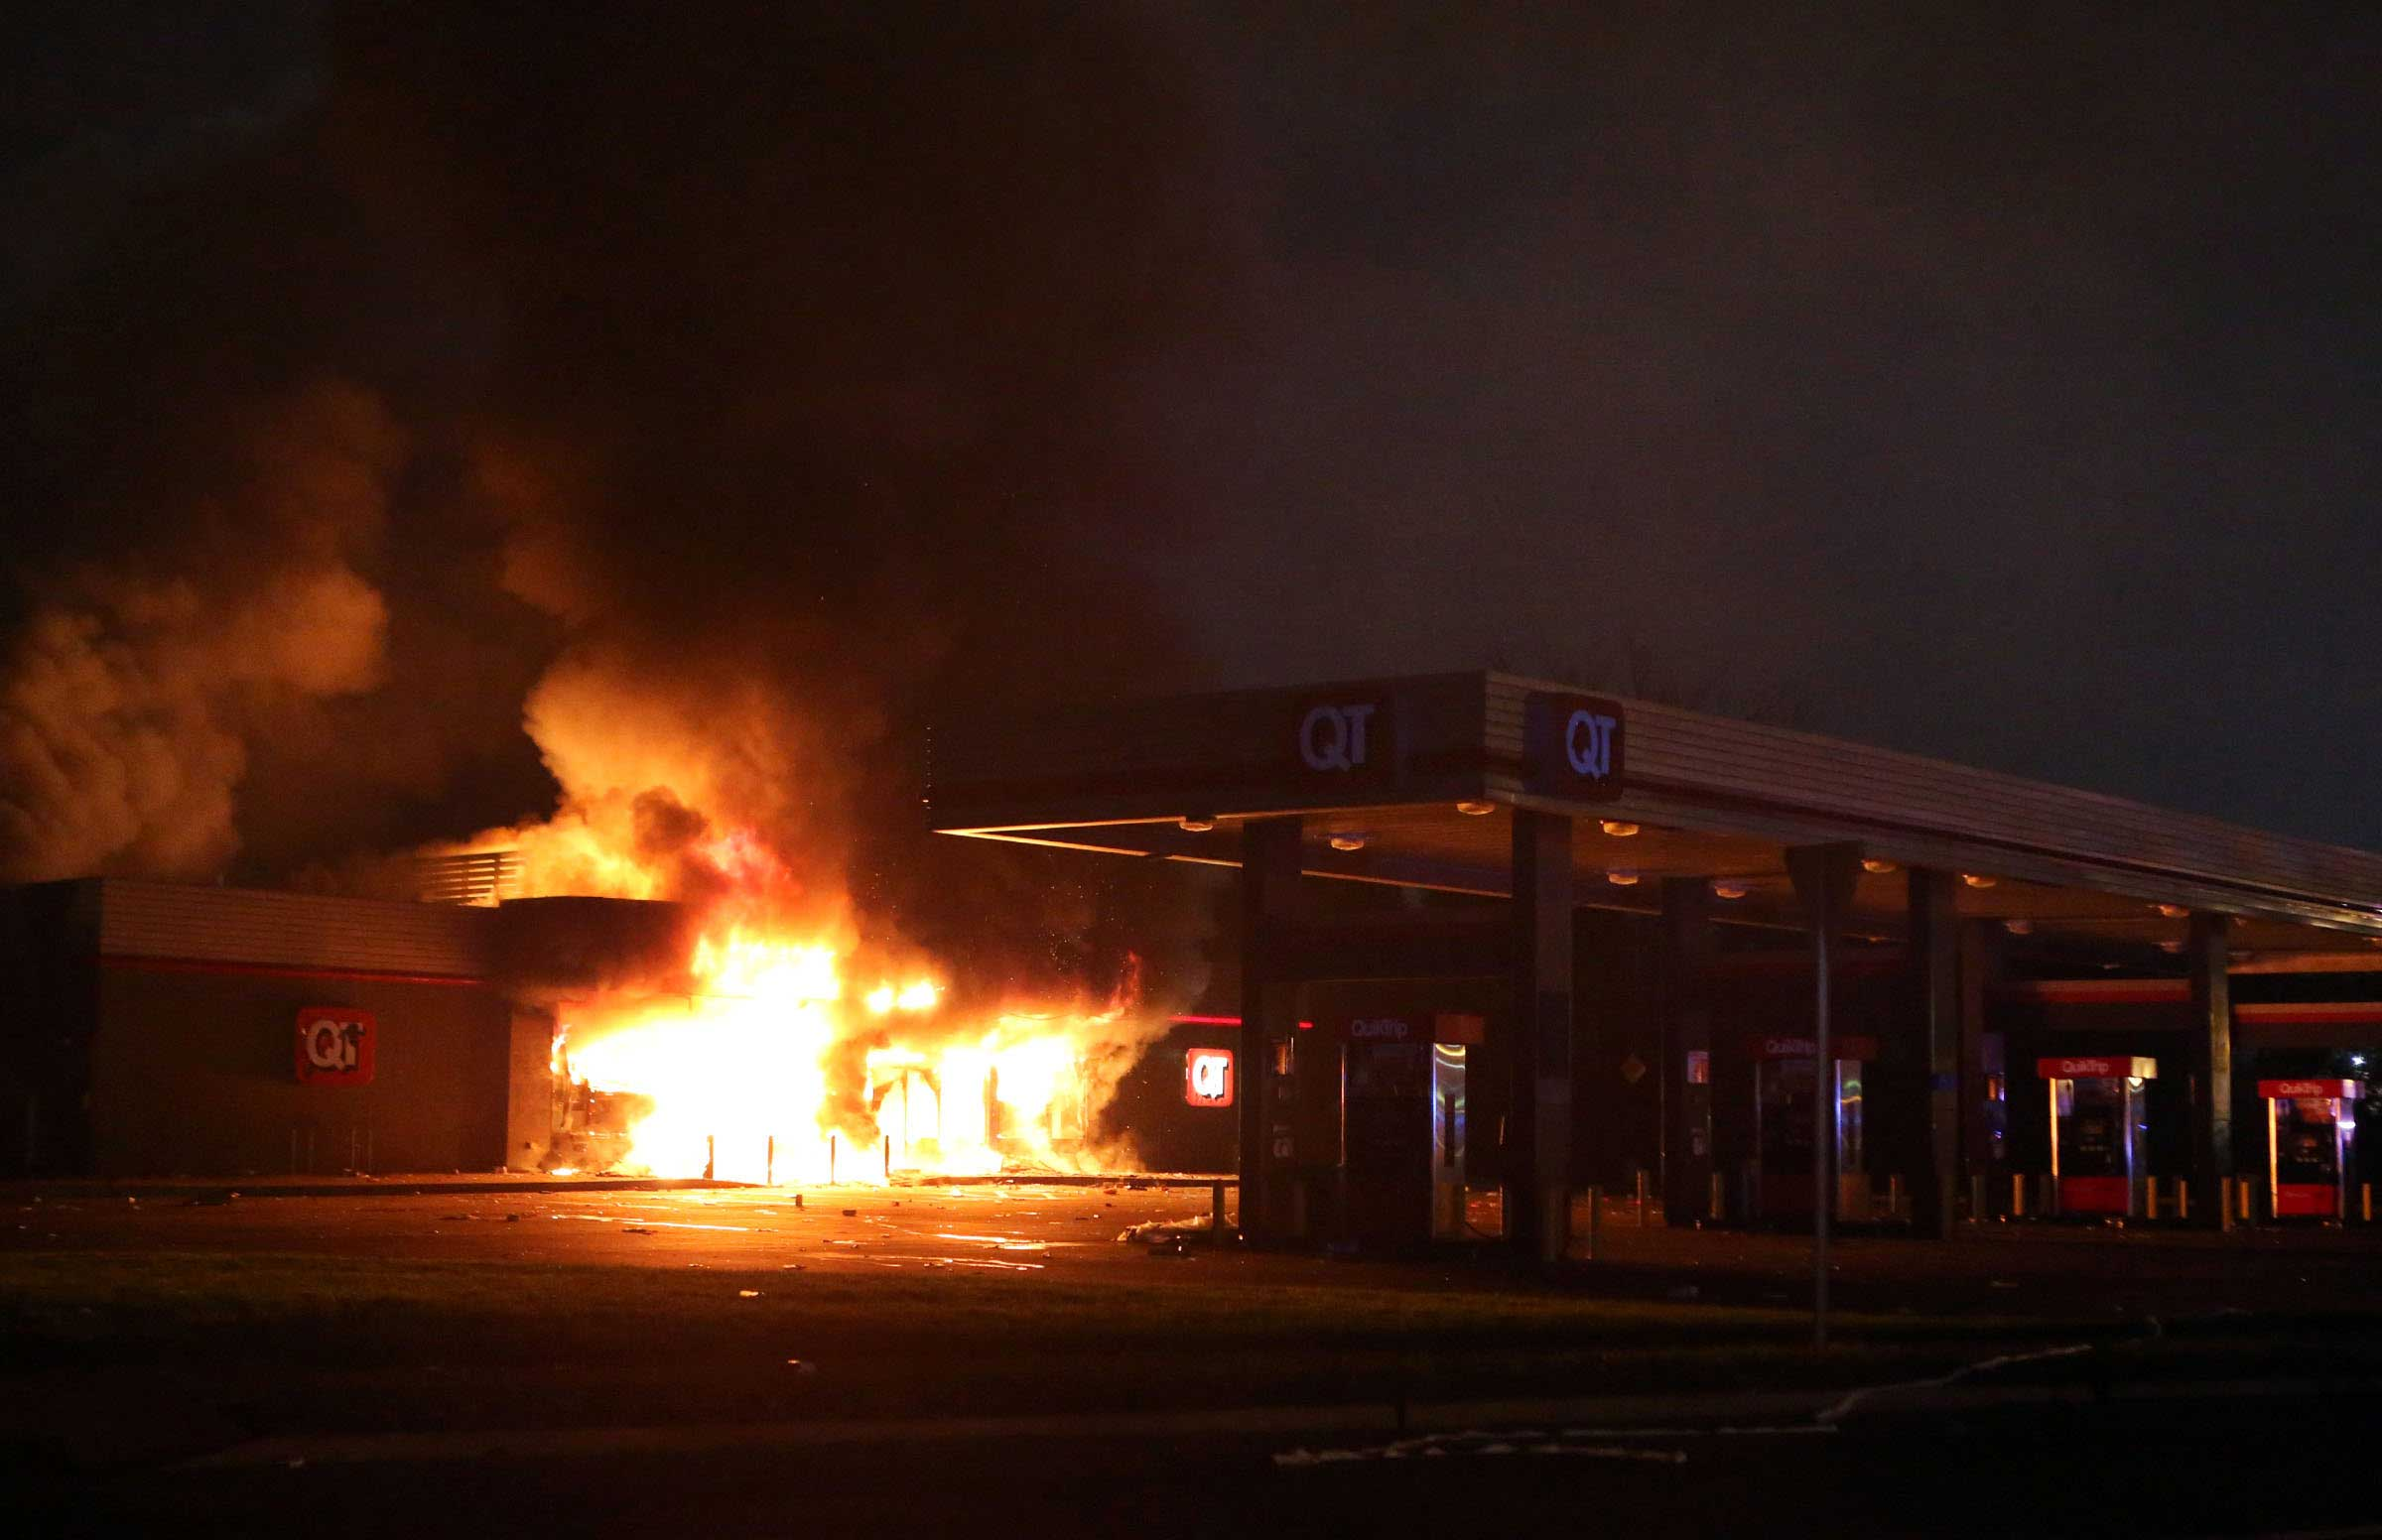 A fire burns at a QuikTrip store in Ferguson on Aug. 10, 2014, as protests turned violent one day after Brown's death. The night marked the first violent turn for the protests.